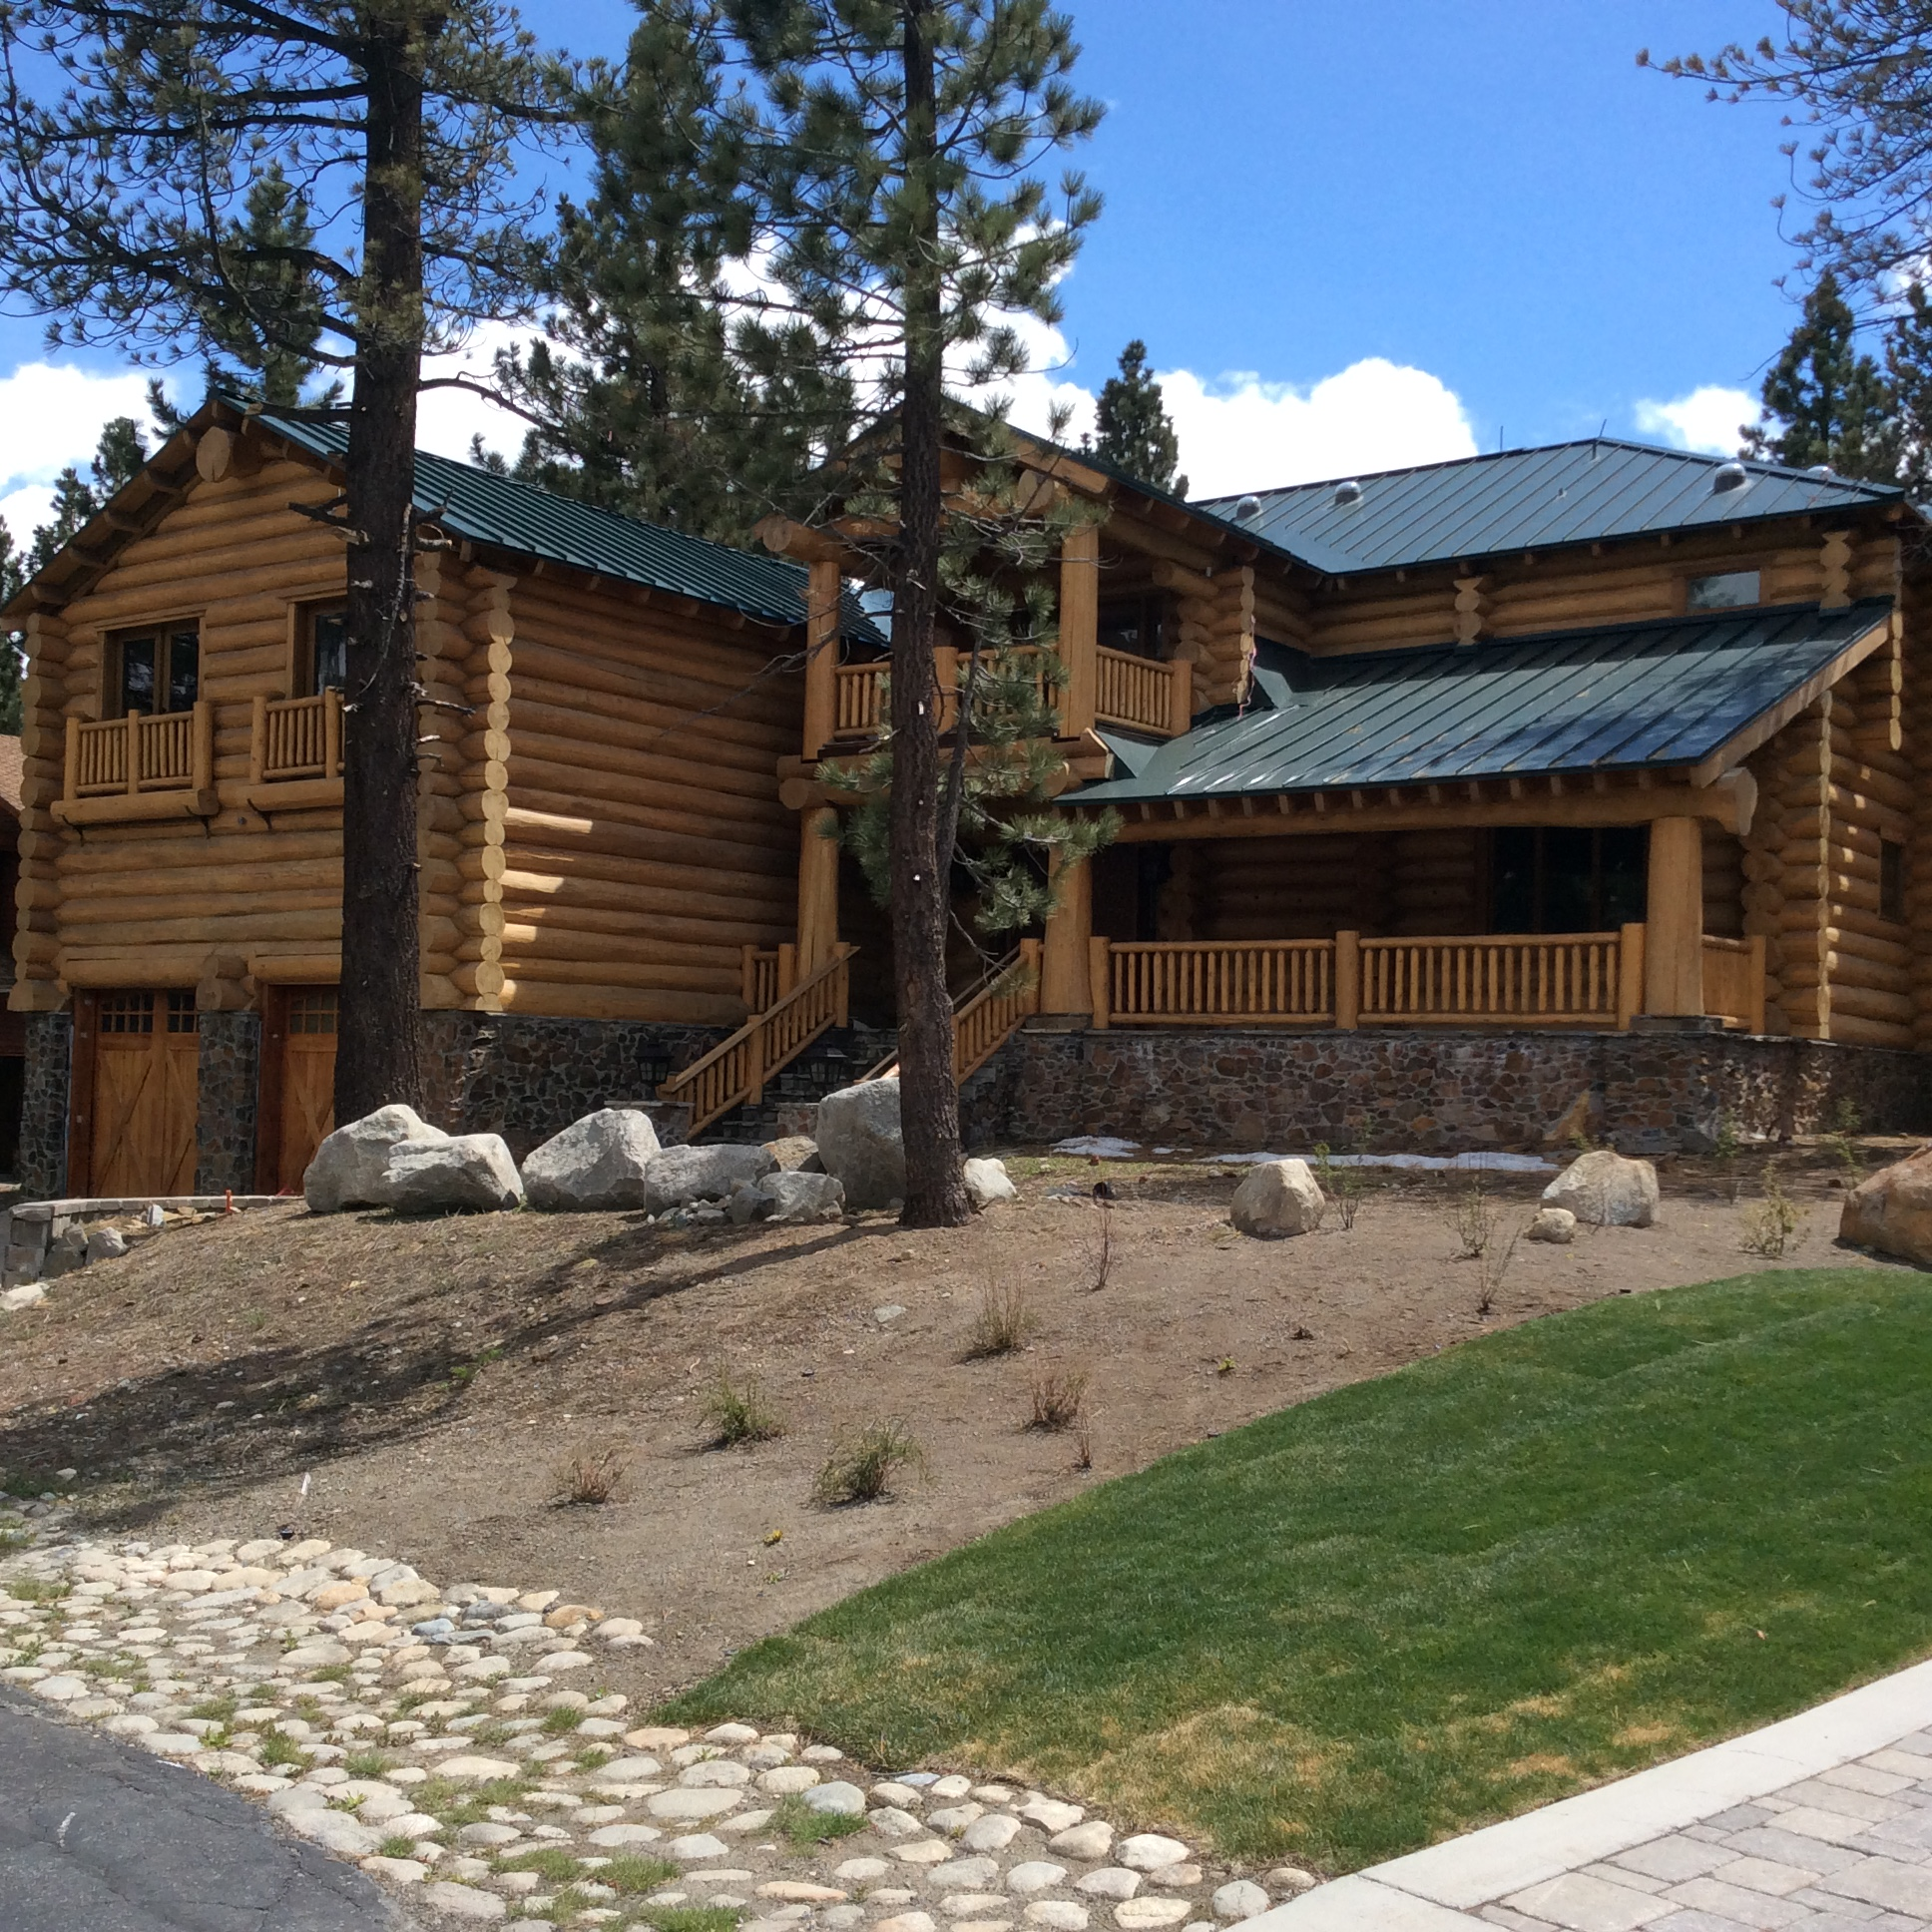 109 STARWOOD DRIVE CUSTOM LOG HOME UPCOMING REO LISTING